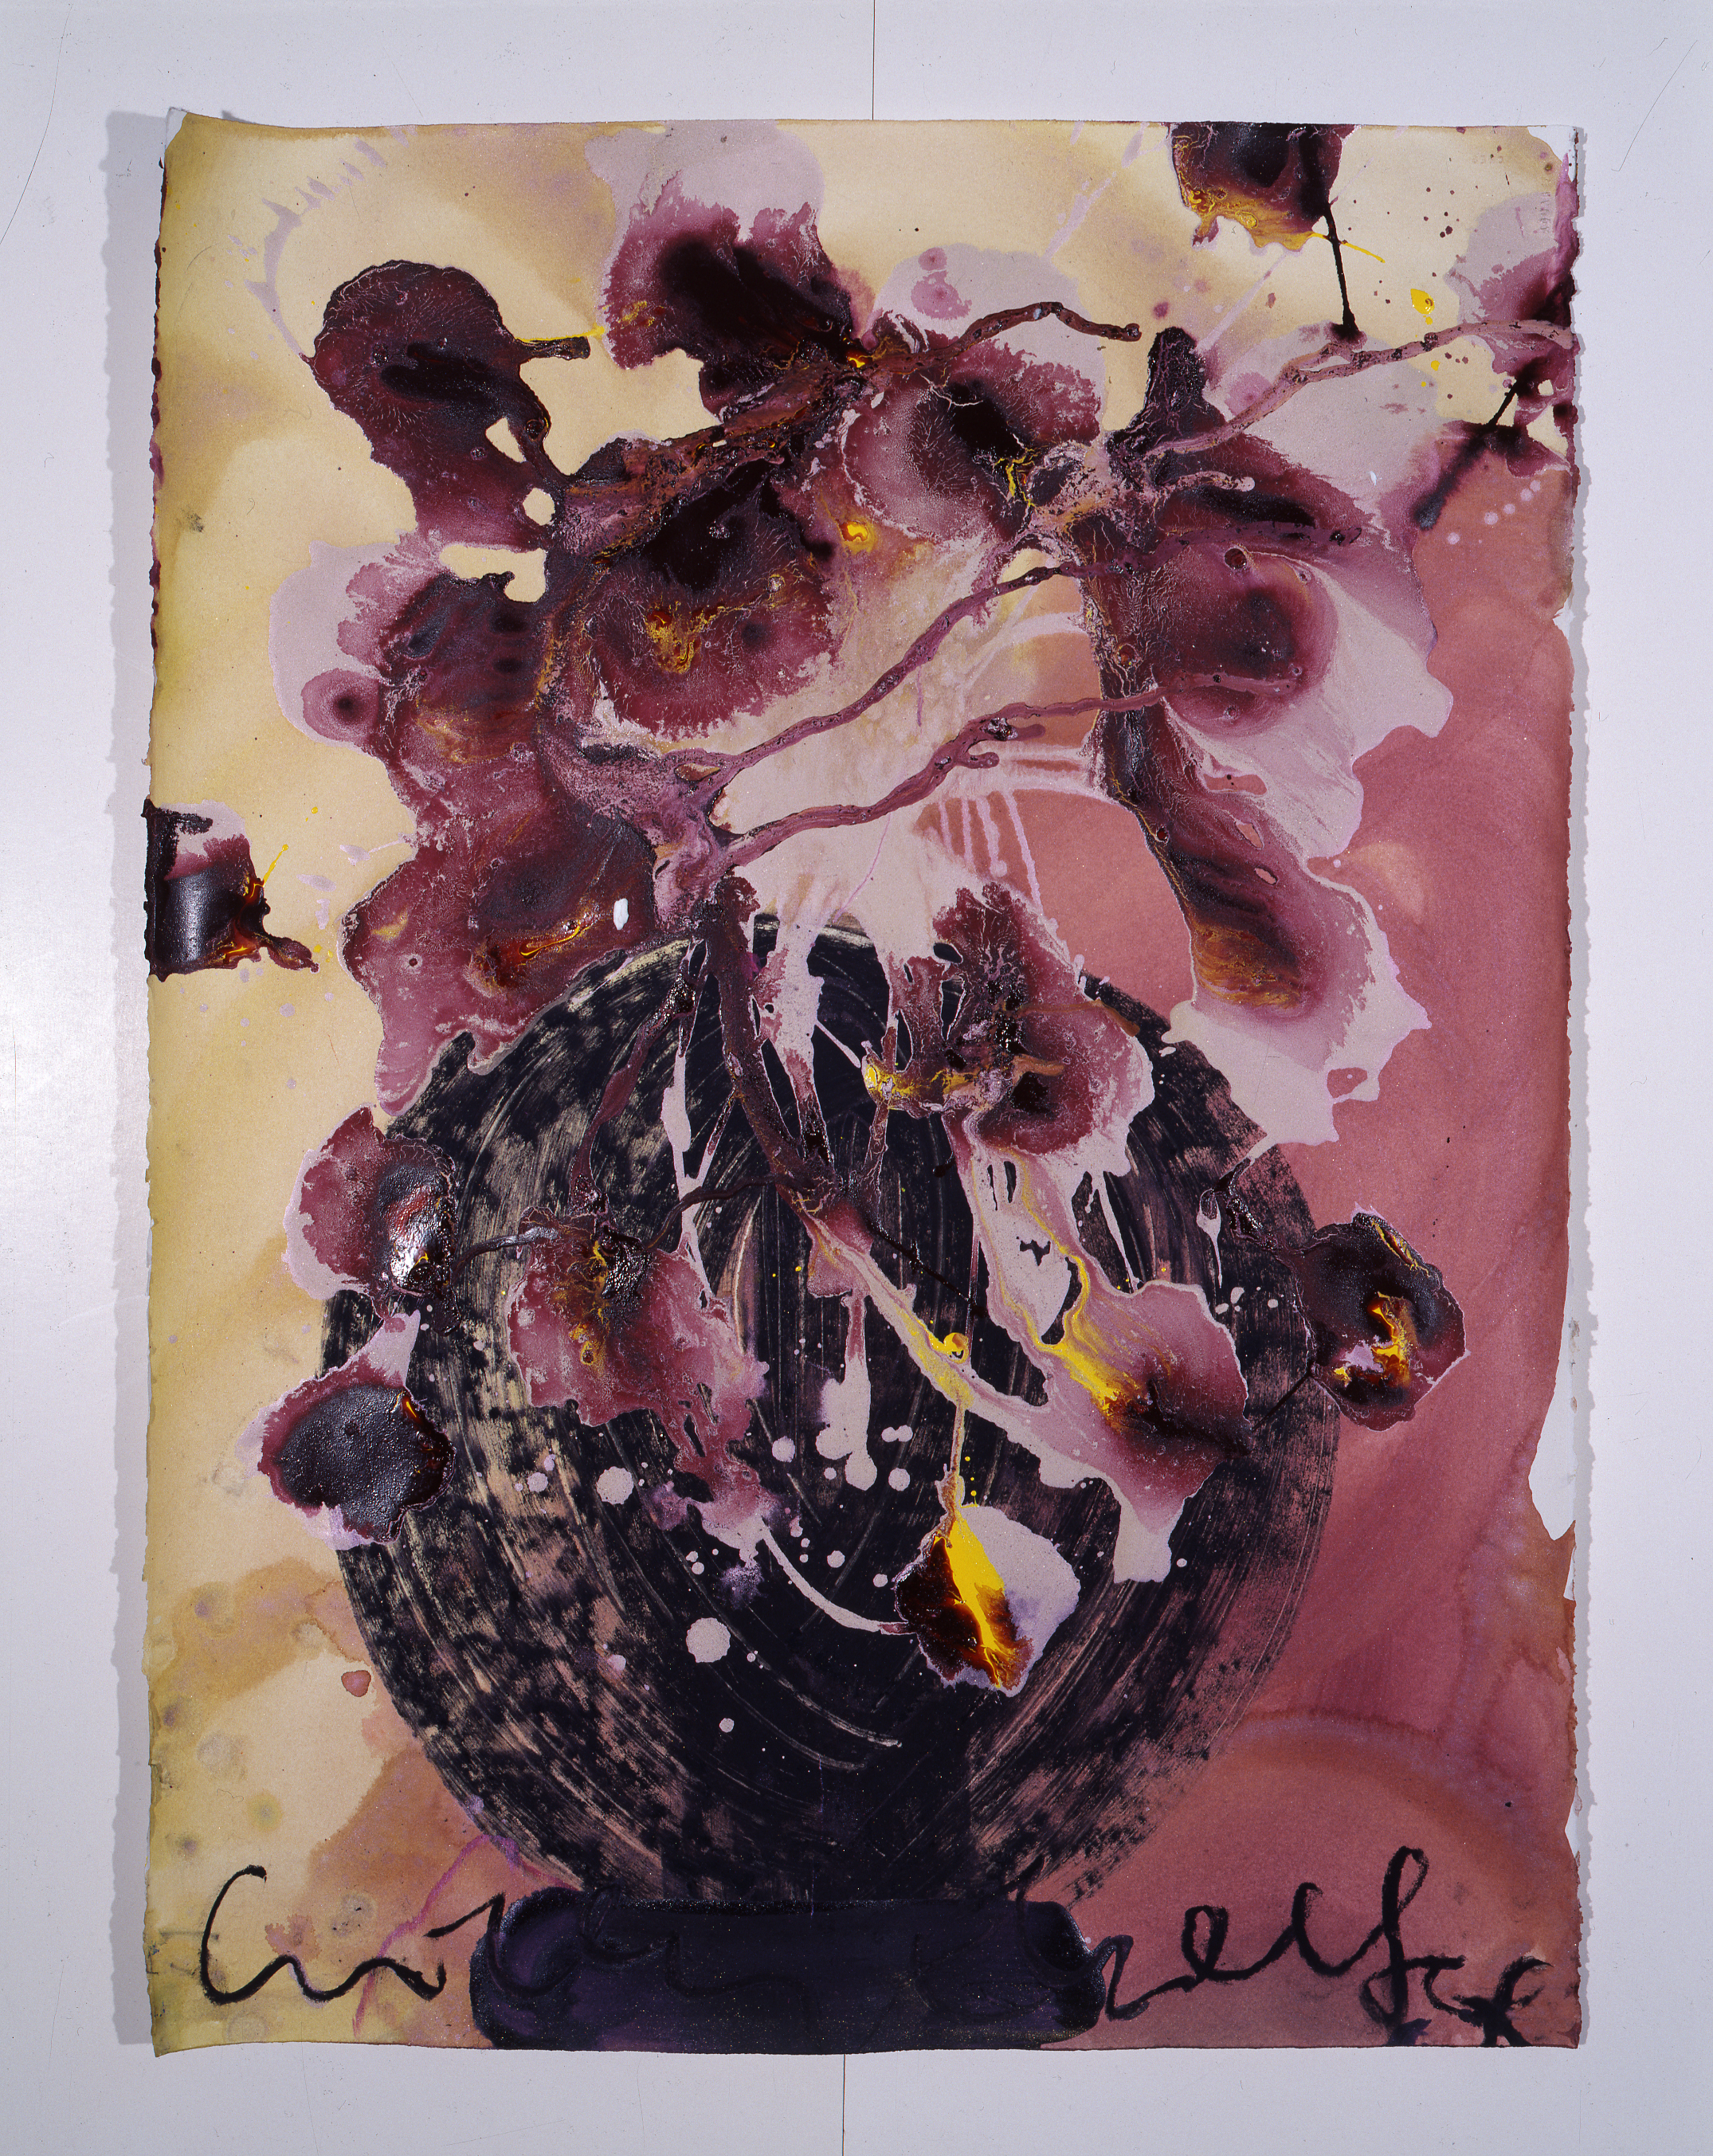 Dale Chihuly, Ebeltoft Drawing, (1991, mixed media on paper, 30 x 22 inches), DC.344